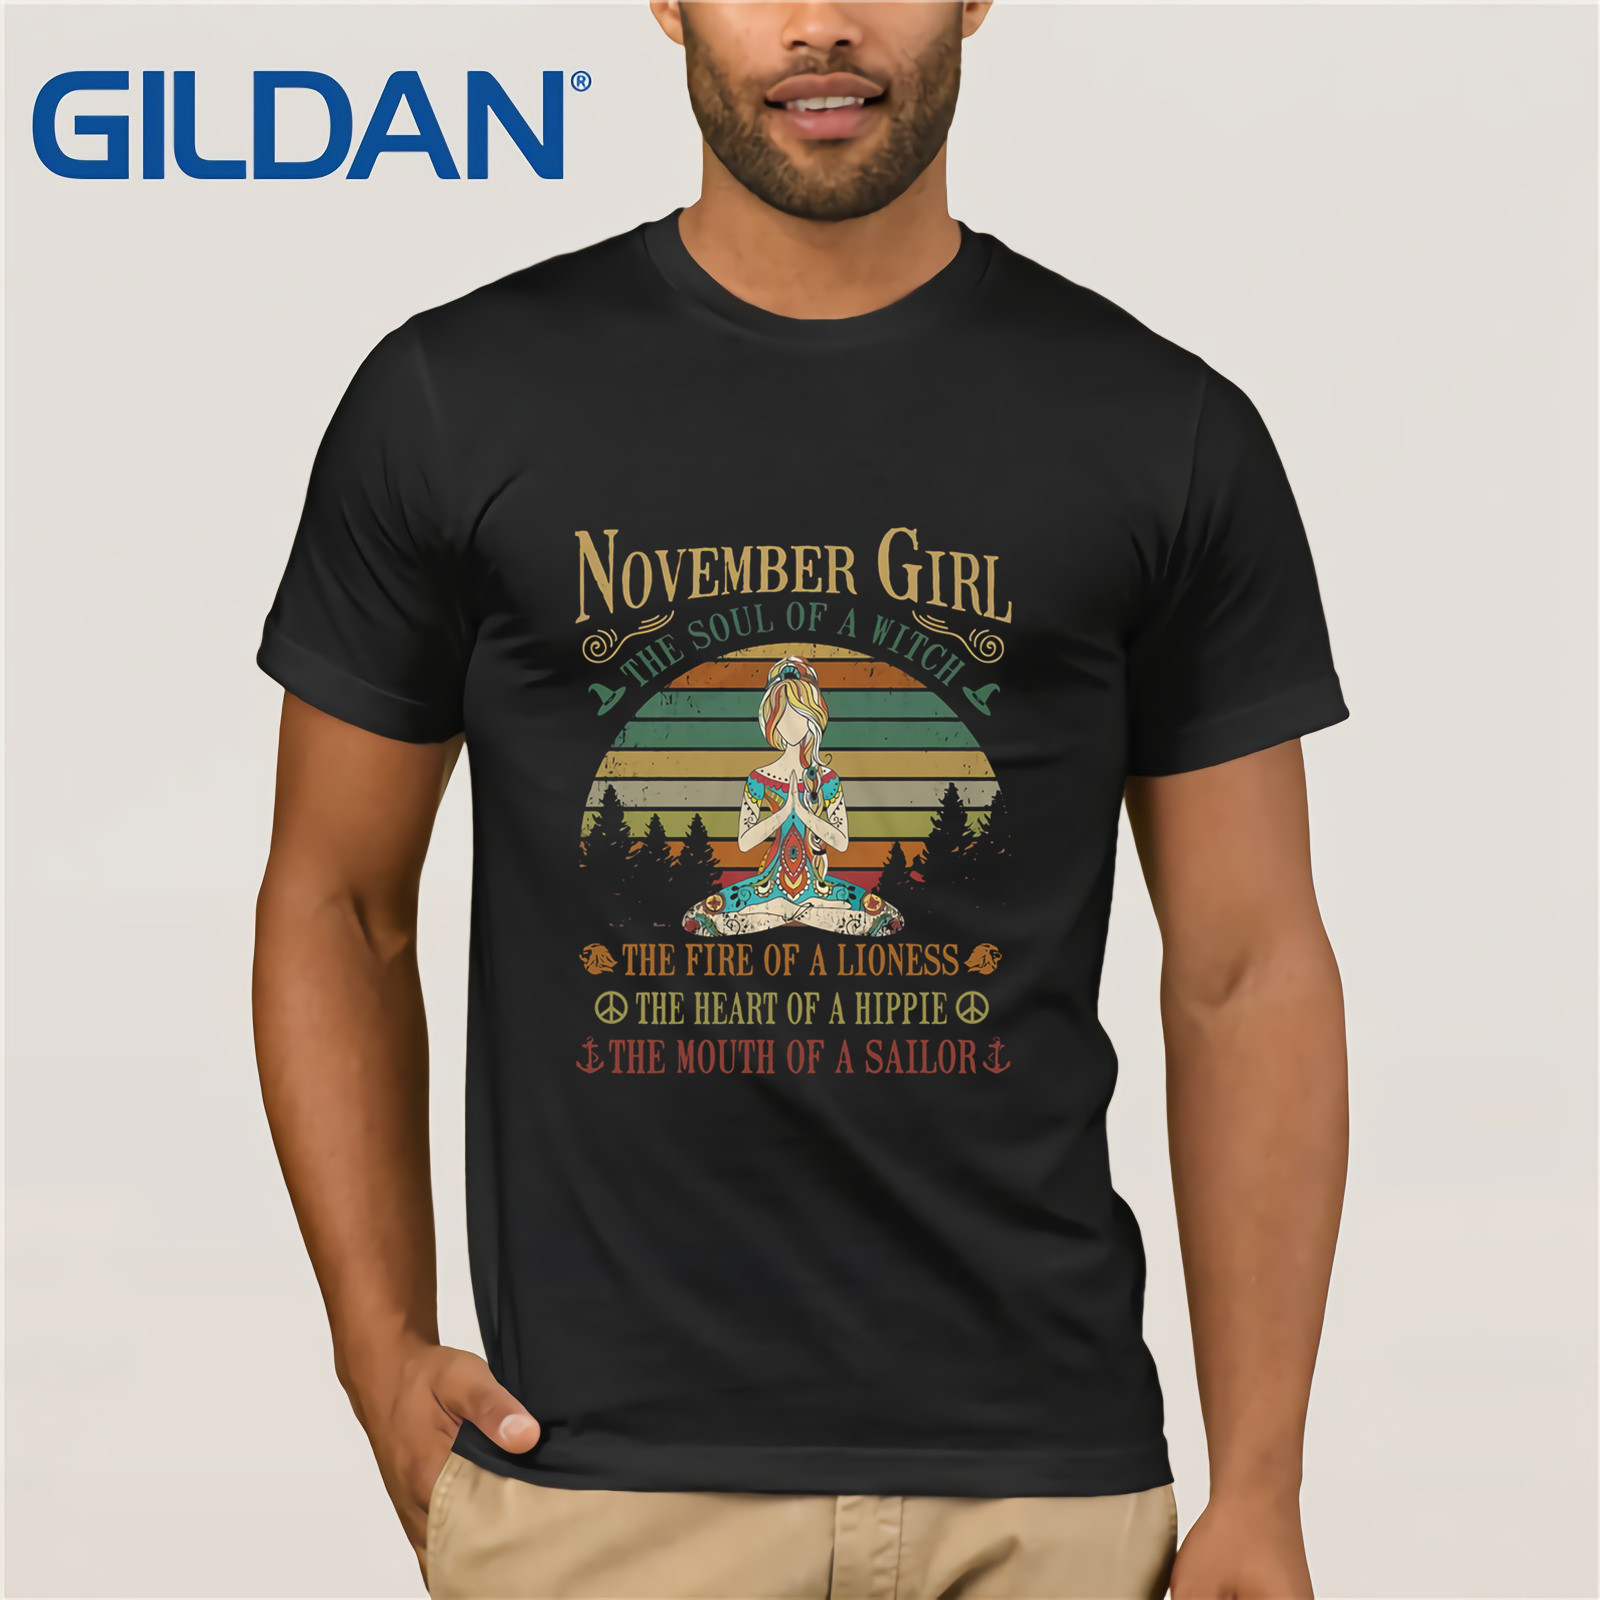 November Girl The Soul Of A Witch The Fire Of A Lioness The Heart Of A Hippie Yoga Girl T-SHIRT